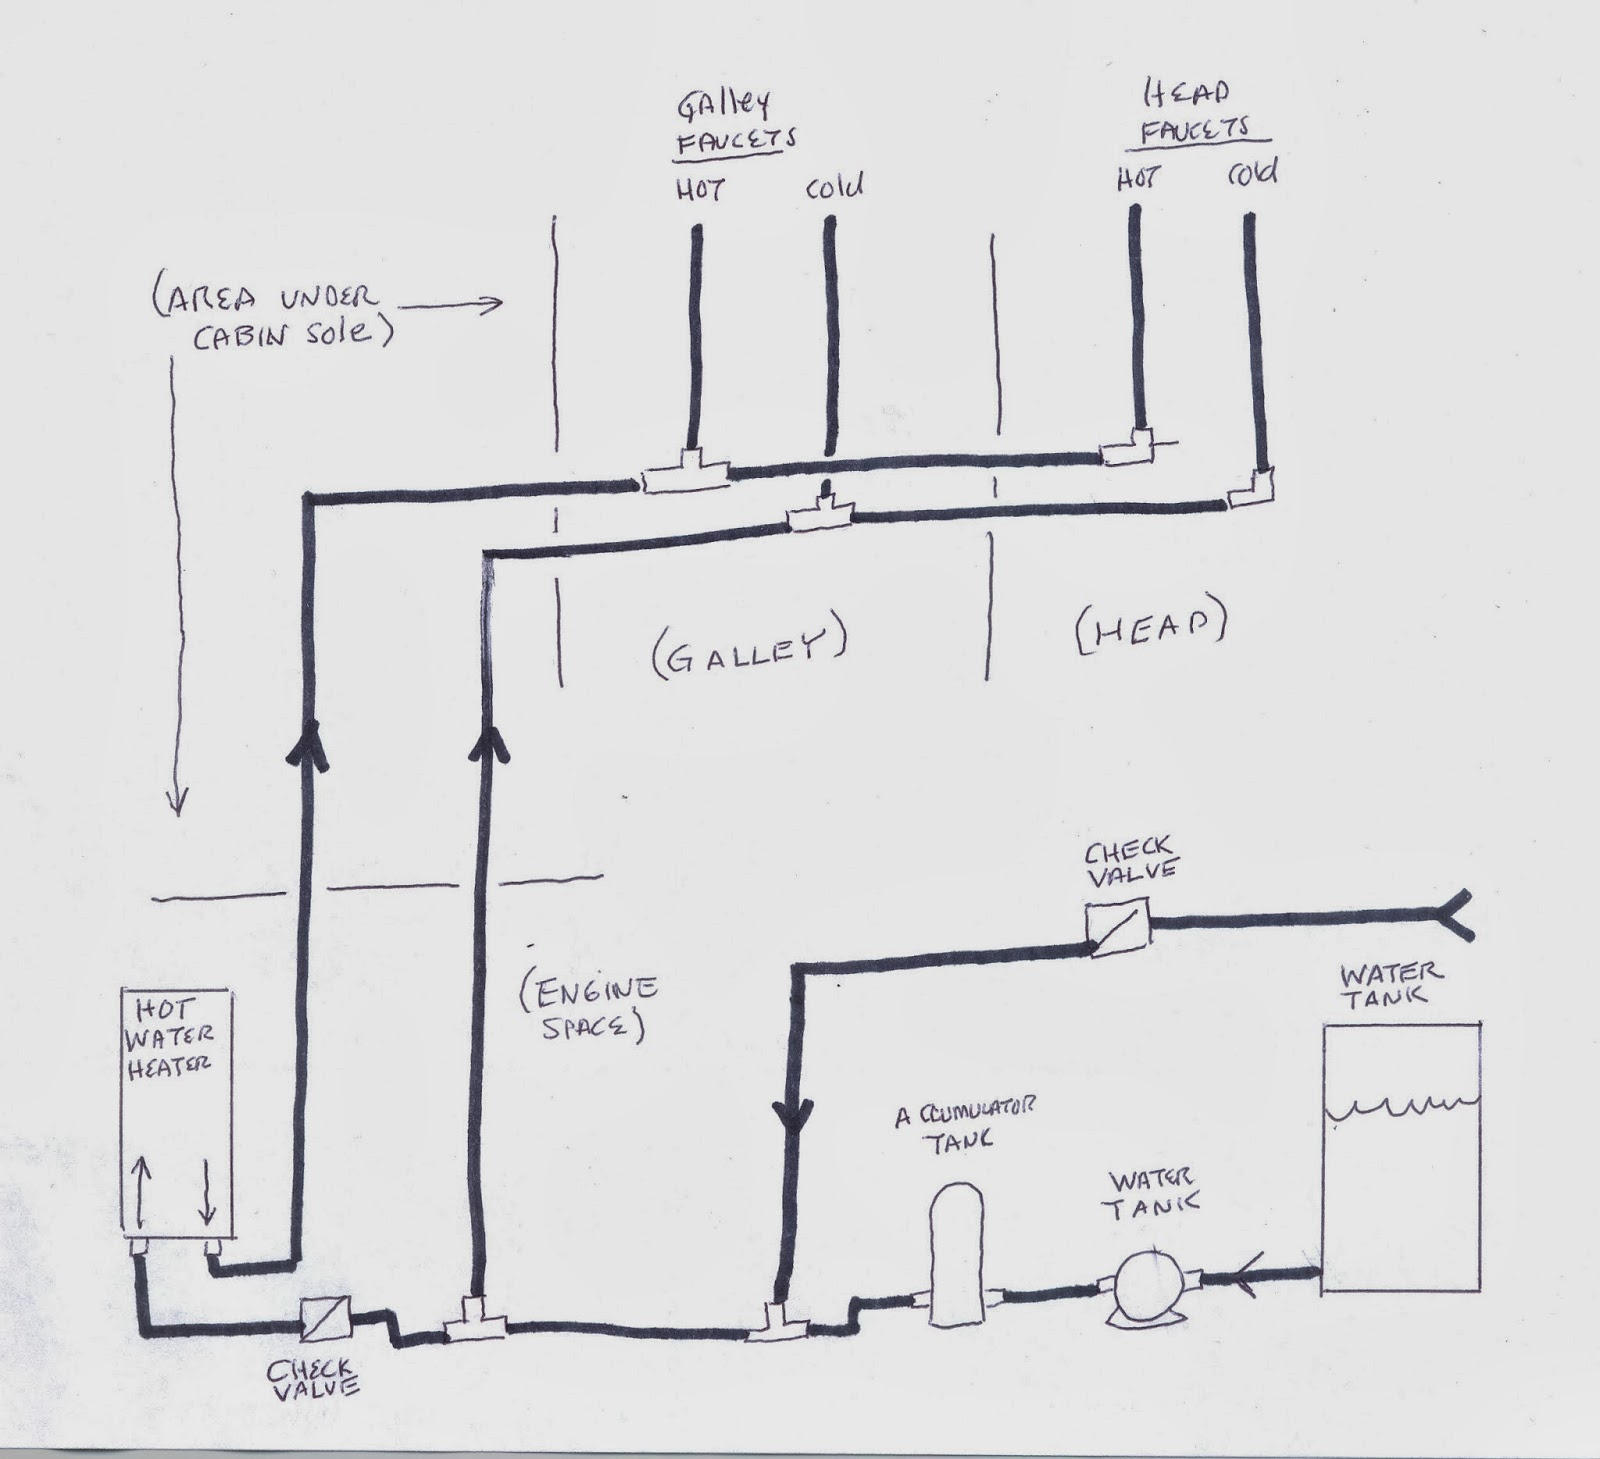 motorhome plumbing diagrams with awesome minimalist